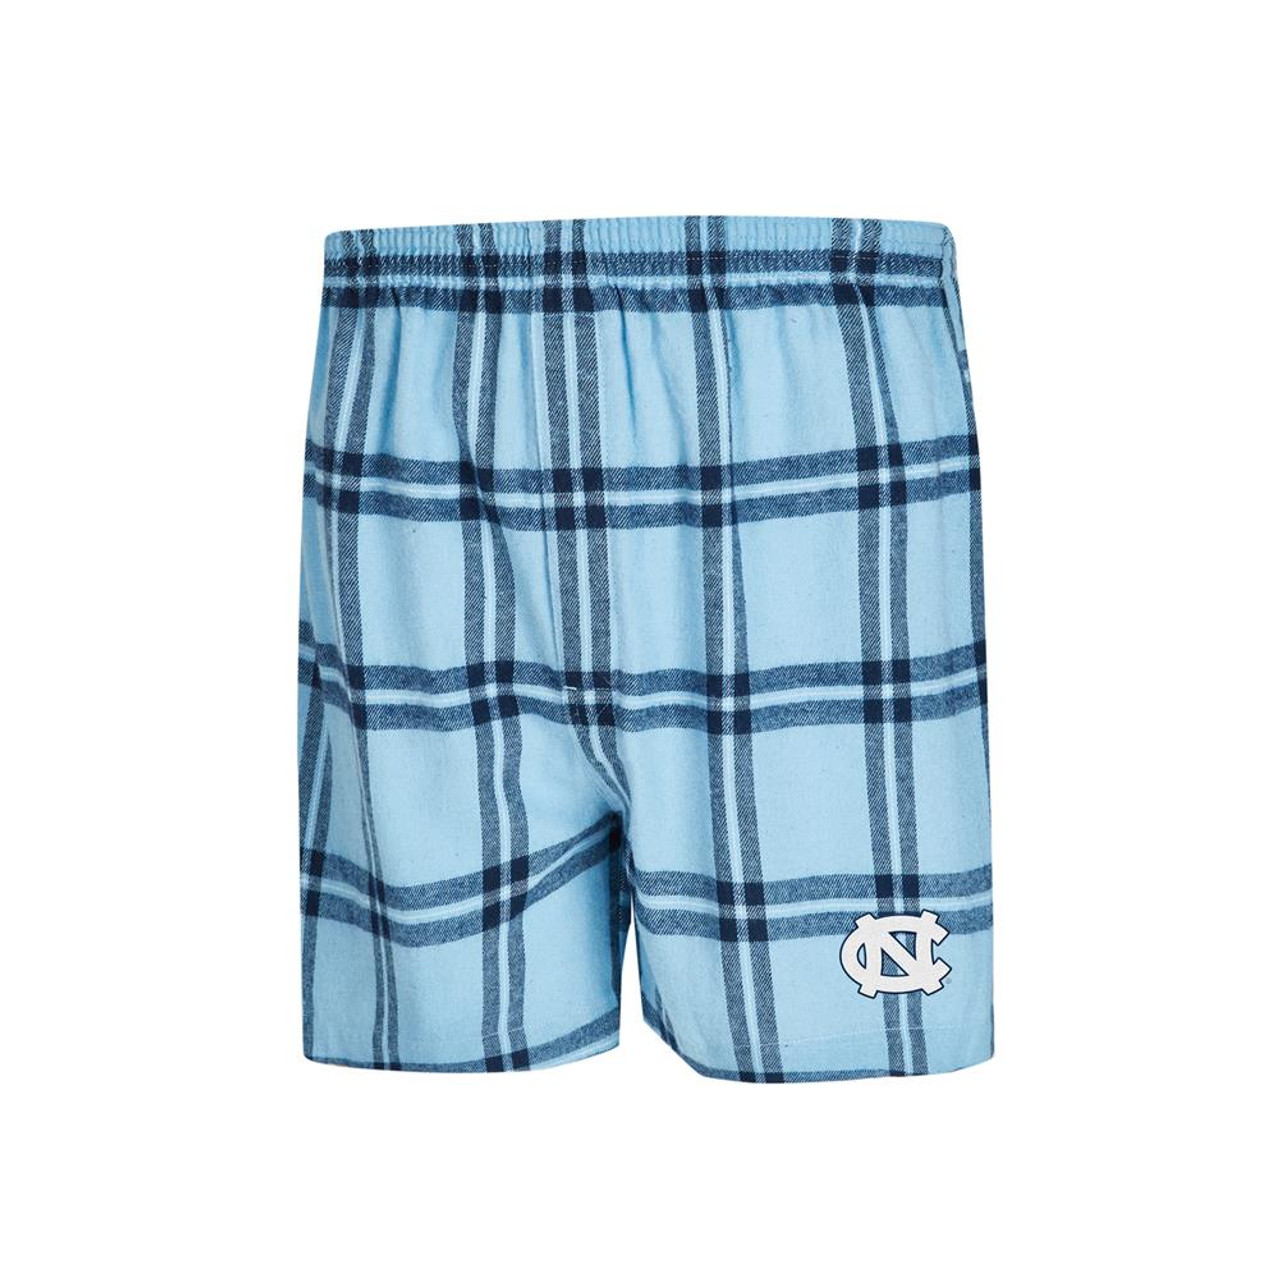 North Carolina Tarheels UNC Men's Boxers Flannel Boxer Shorts